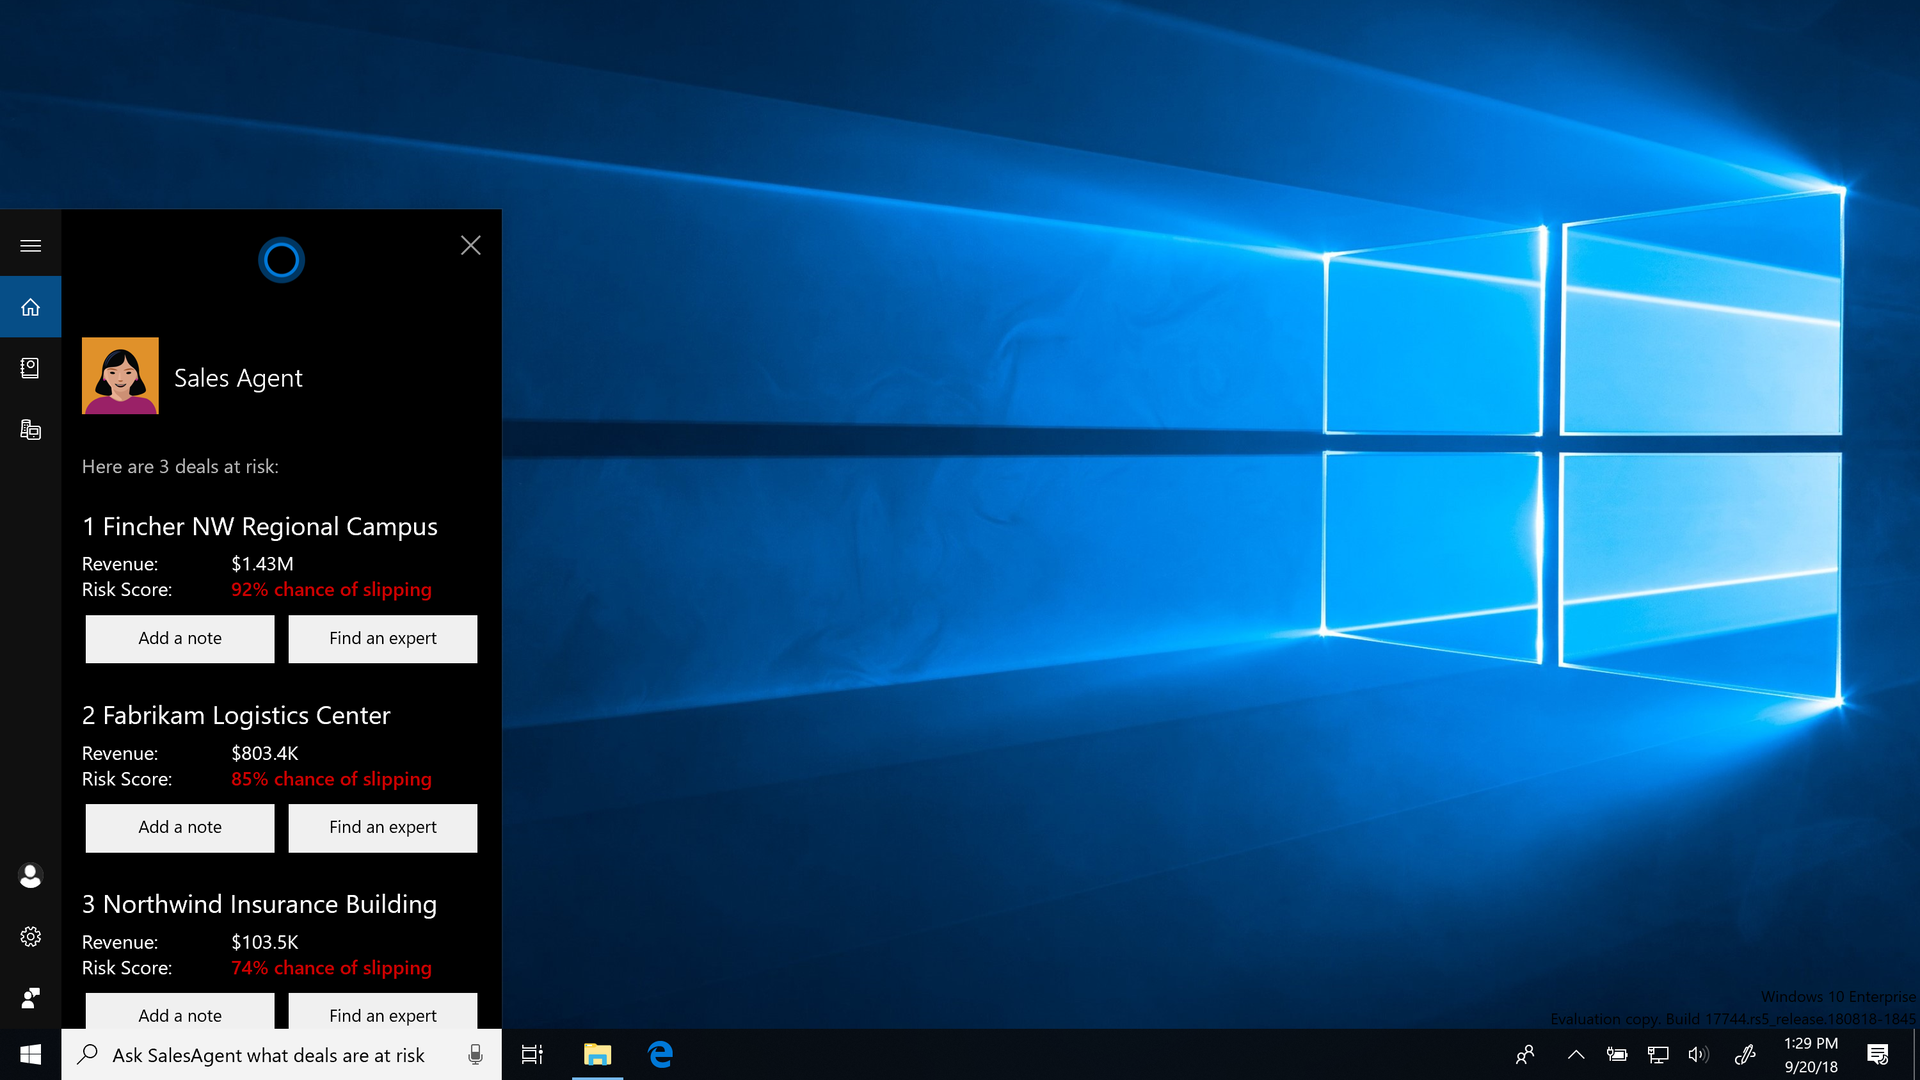 New AI tools in Cortana as seen on a Windows 10 desktop